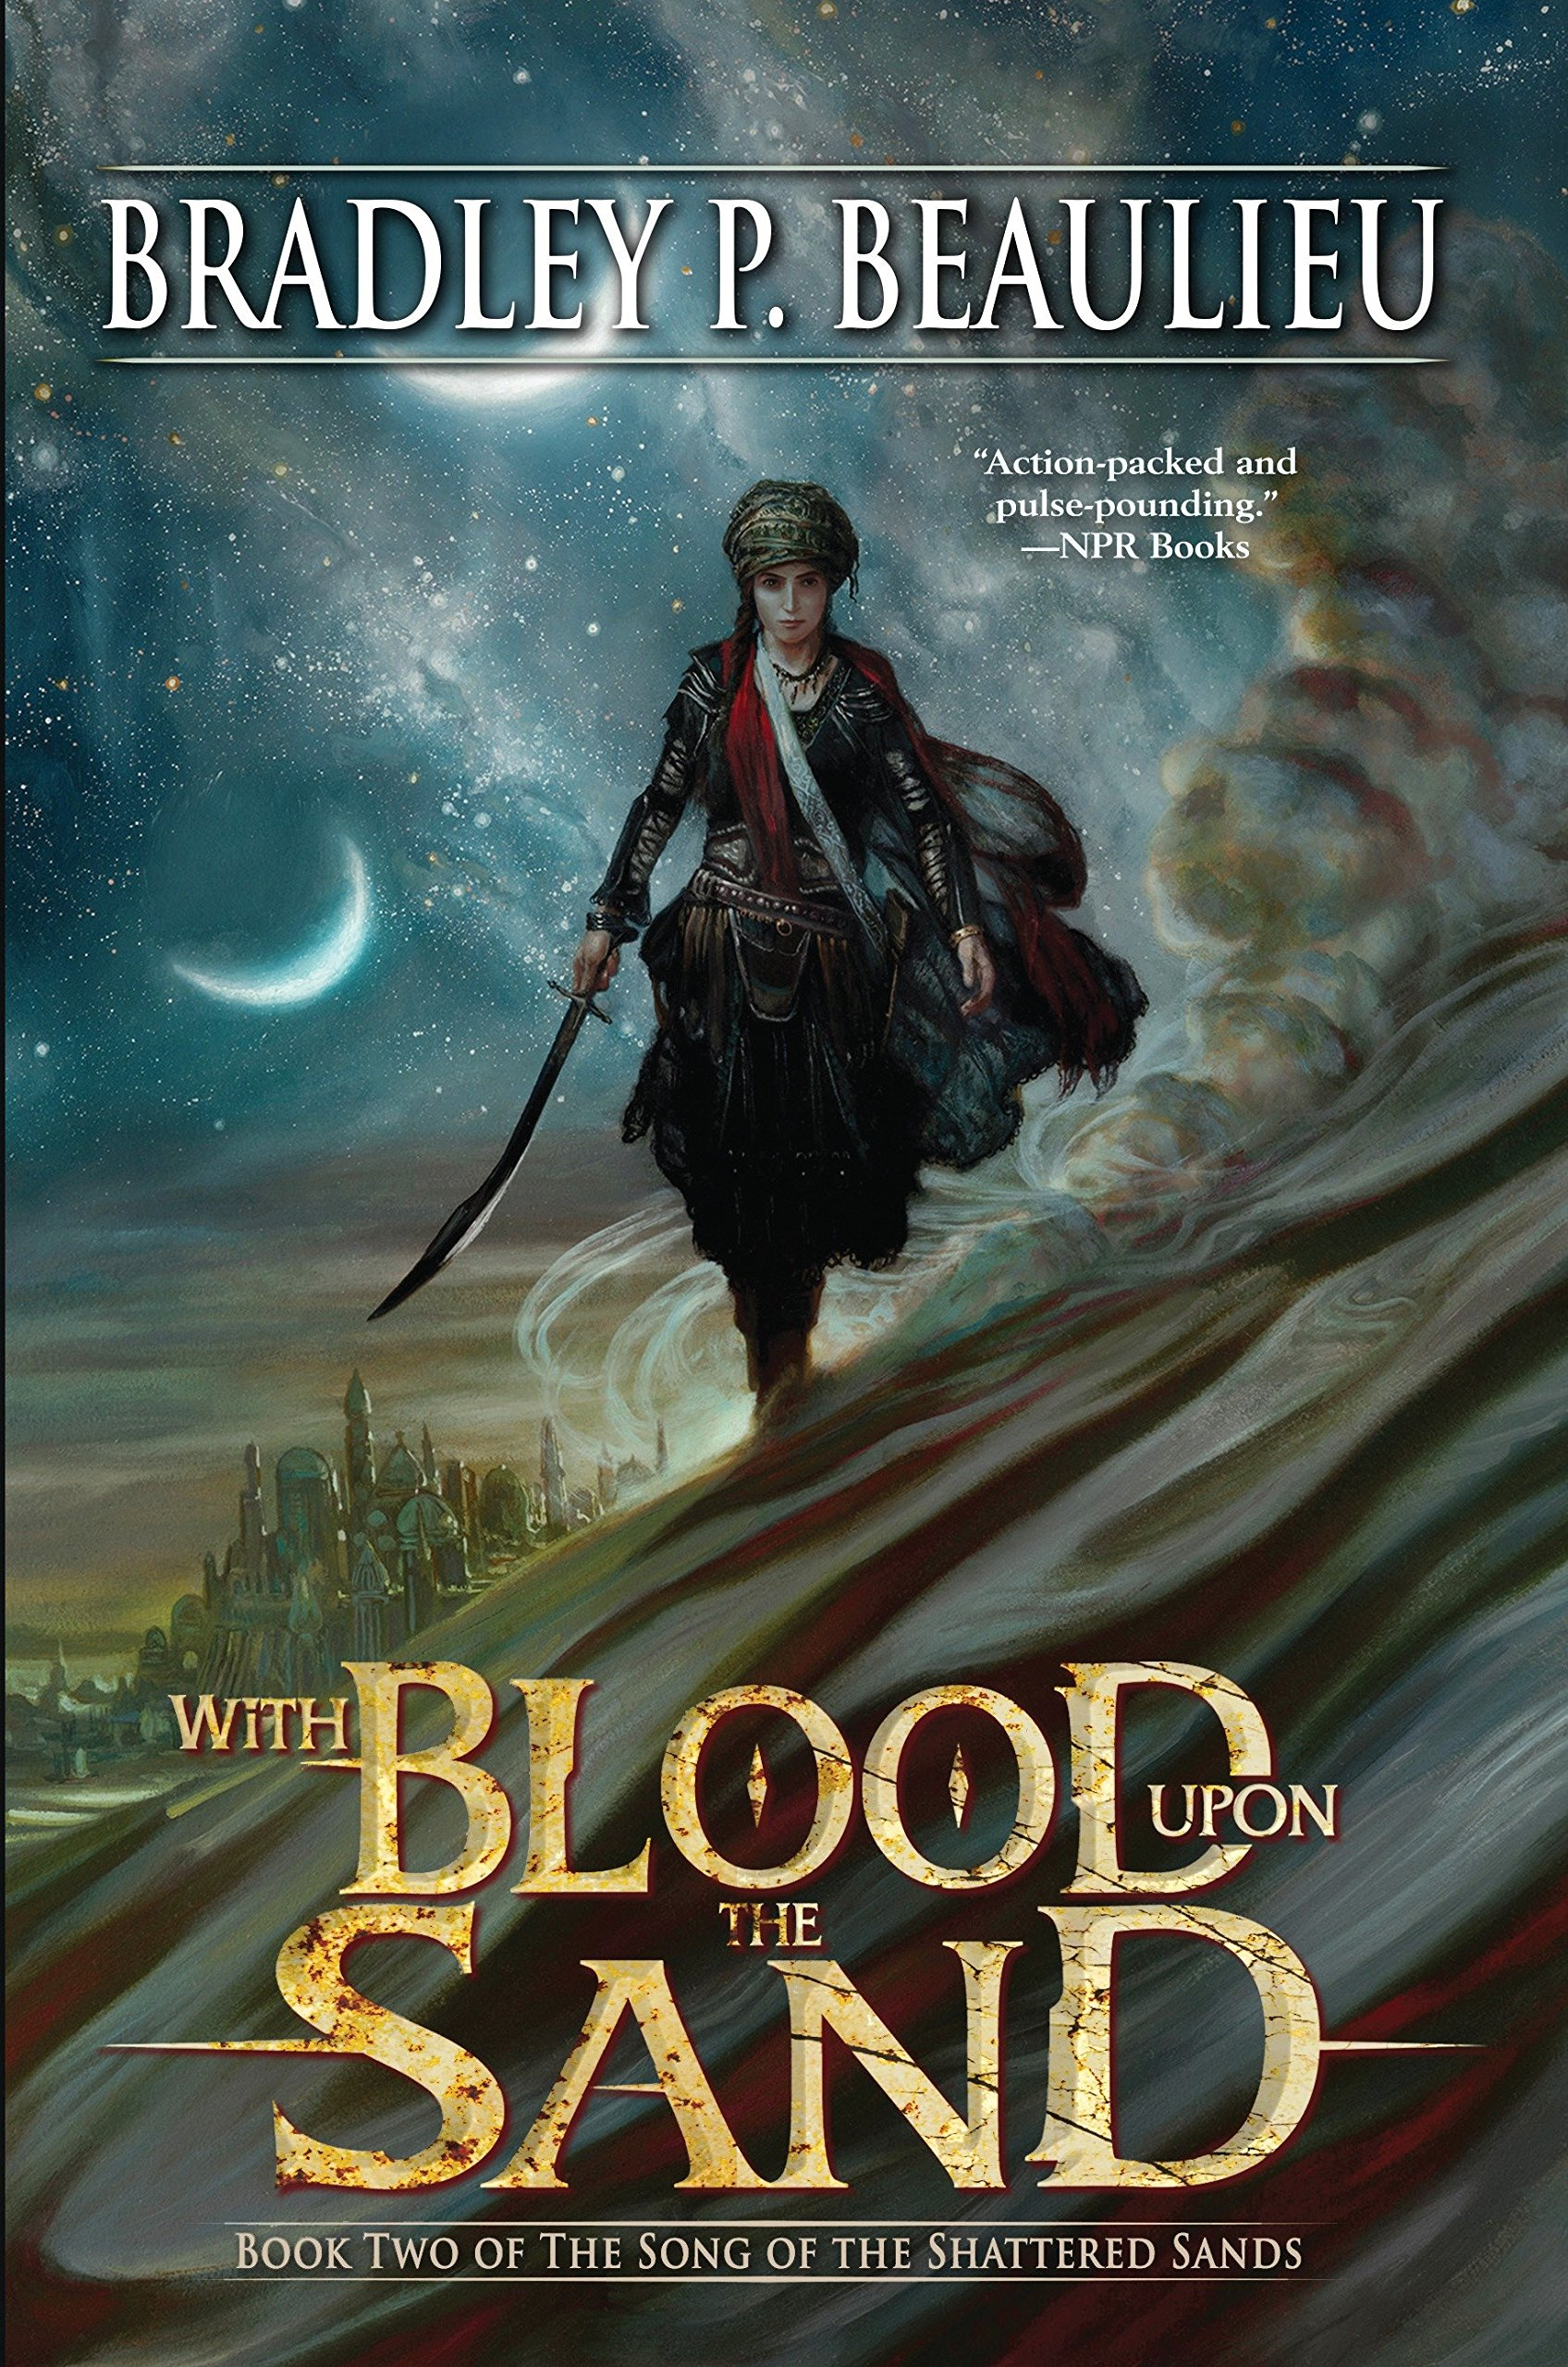 With Blood Upon the Sand Song of the Shattered Sands: Amazon ...